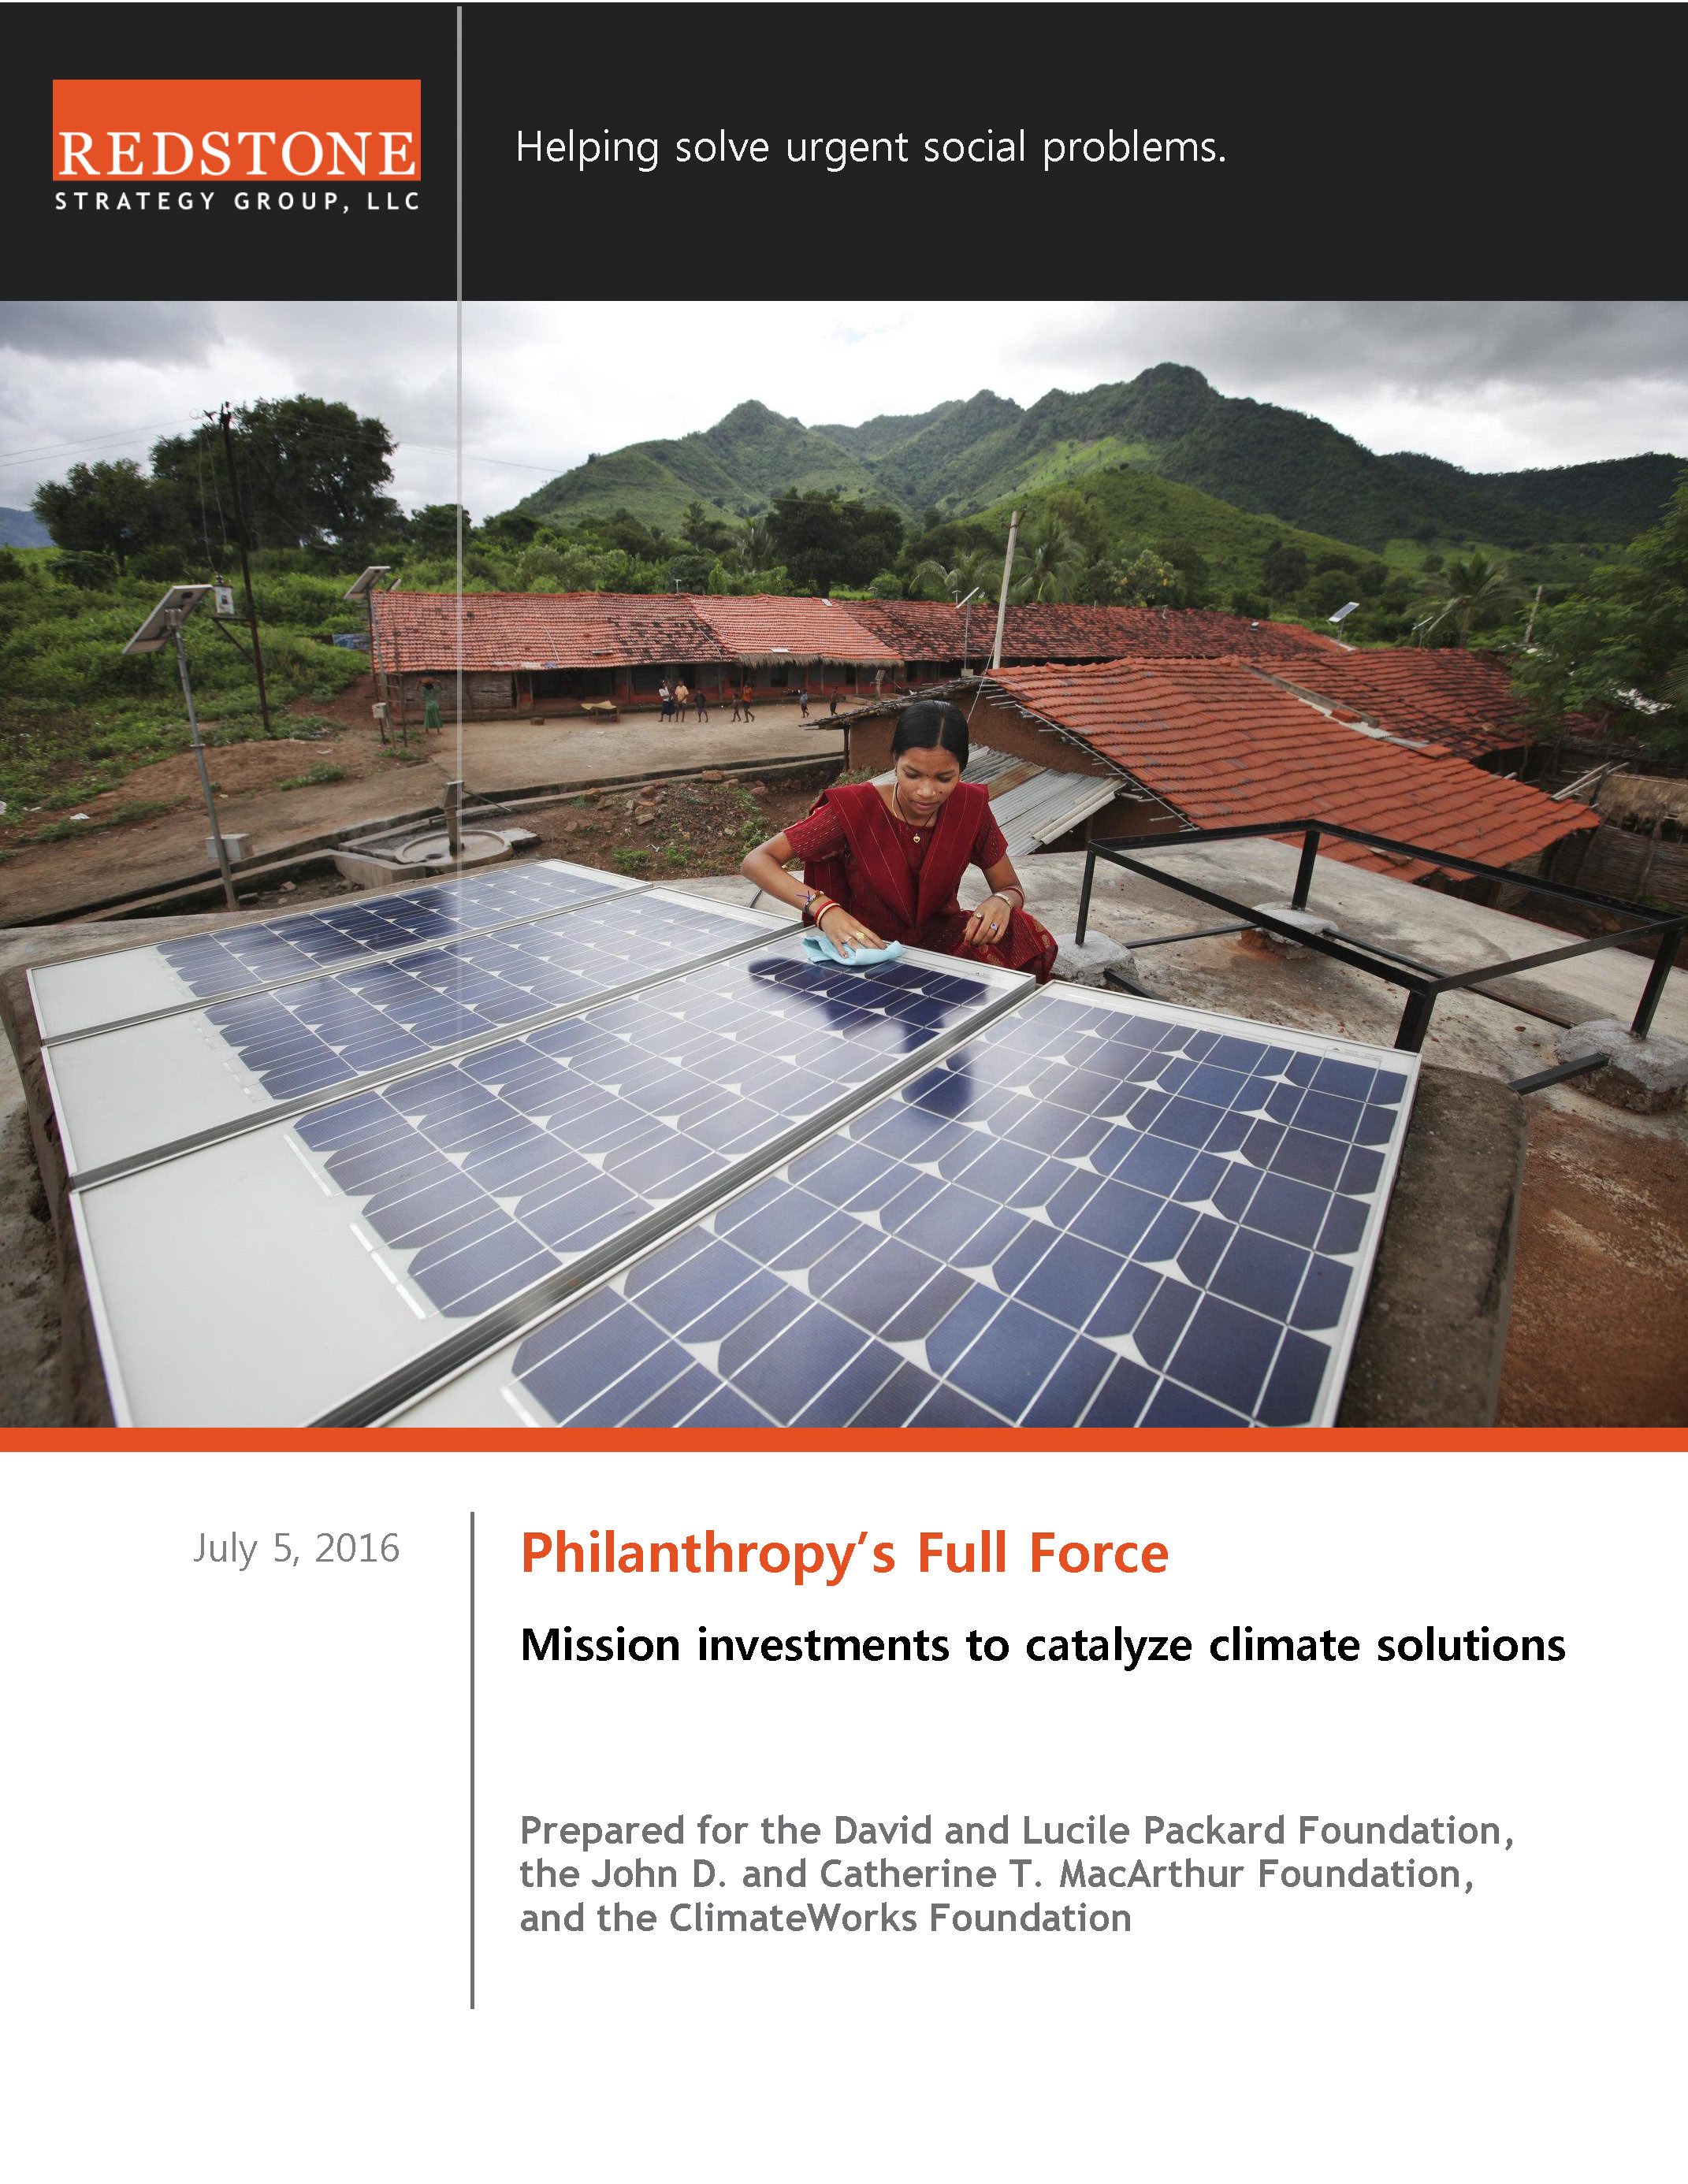 Pages from 2016-07-05 Mission investments to catalyze climate solutions